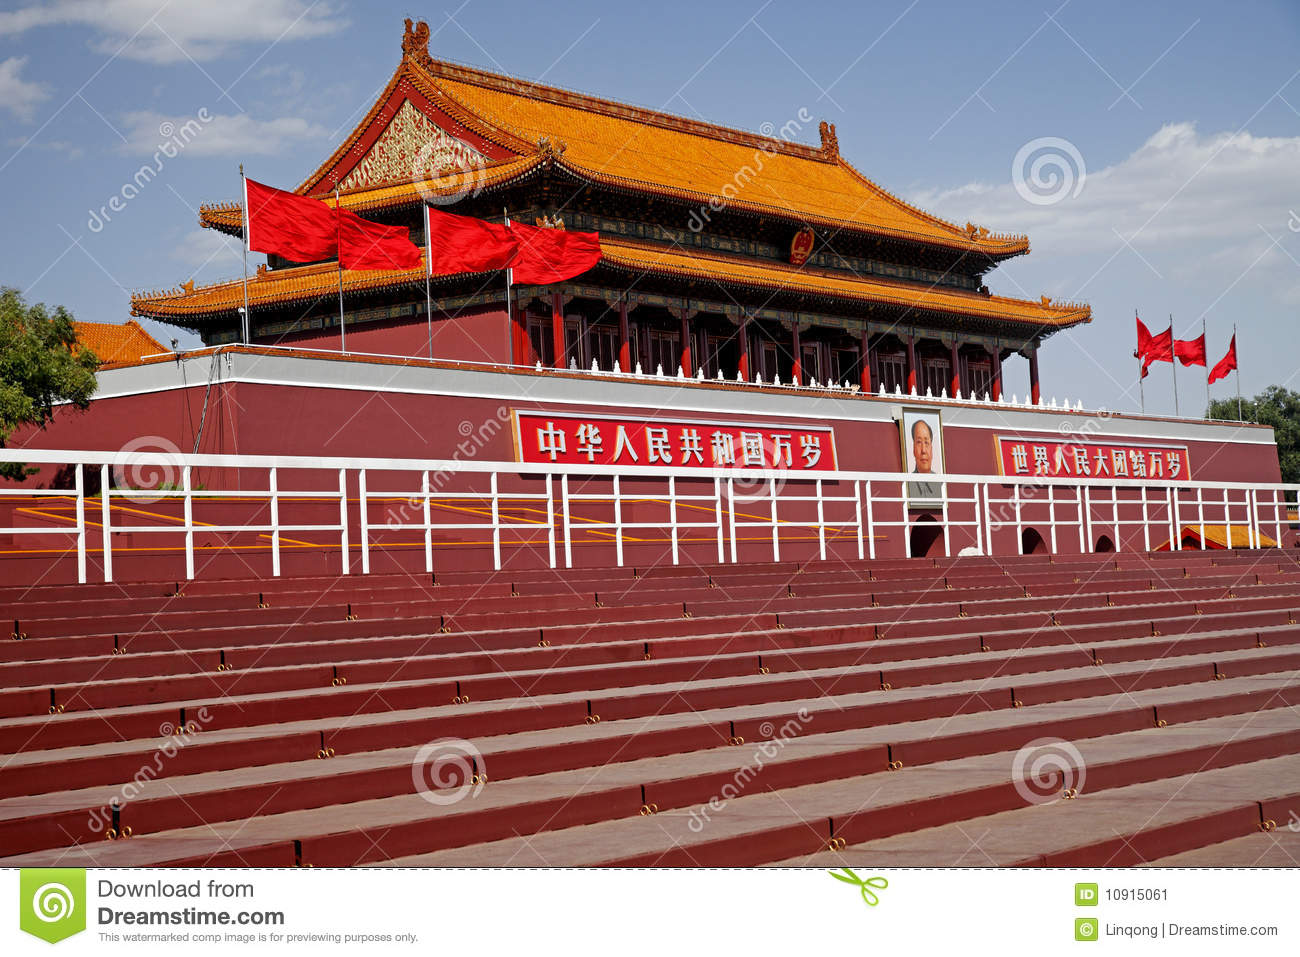 National Day of China. 2009